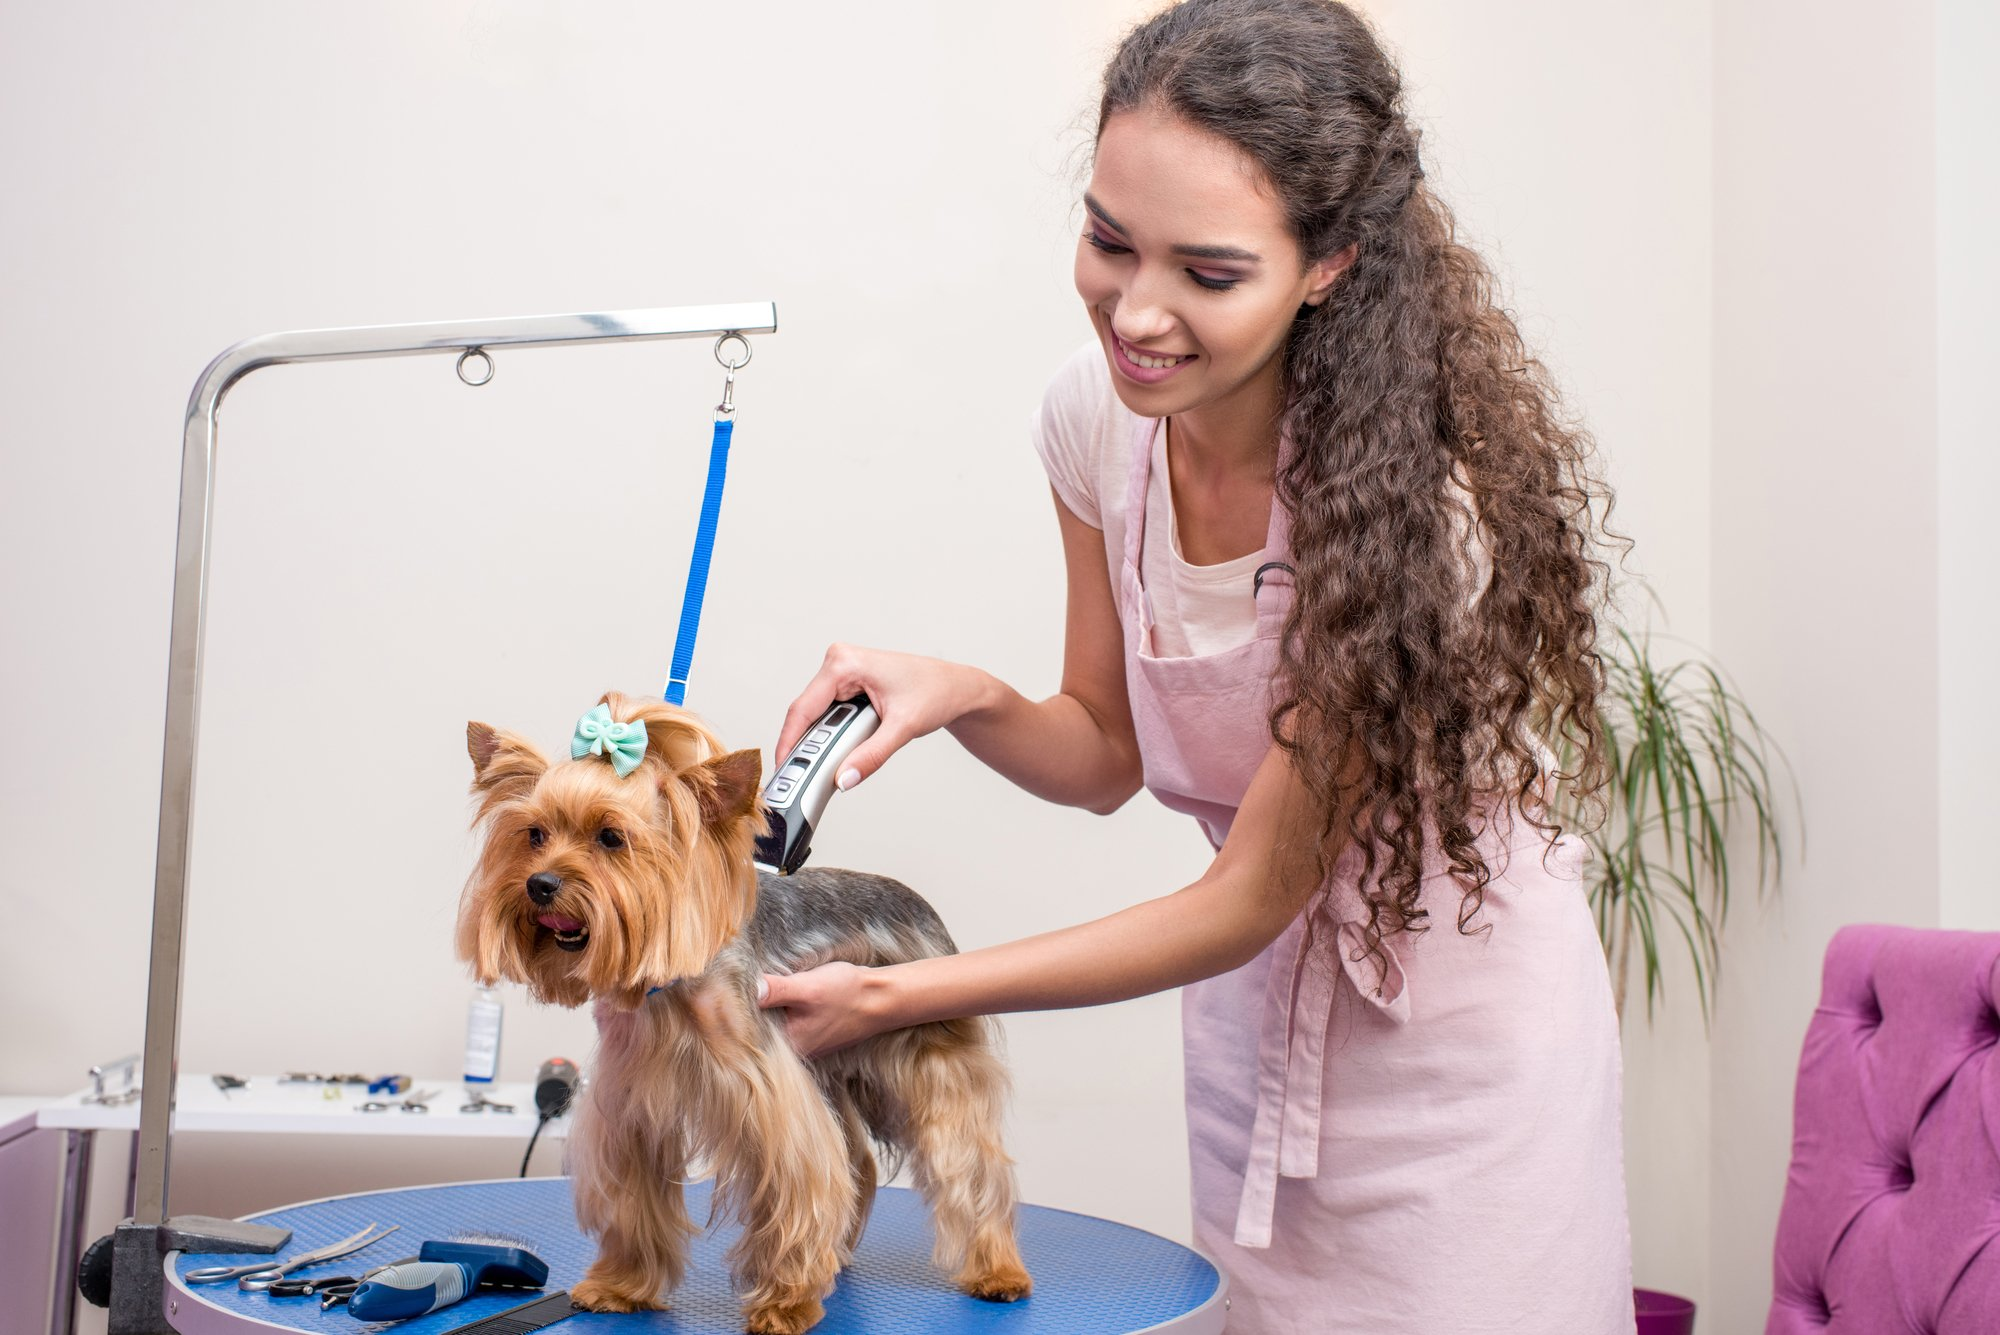 Professional groomer giving a dog a haircut.